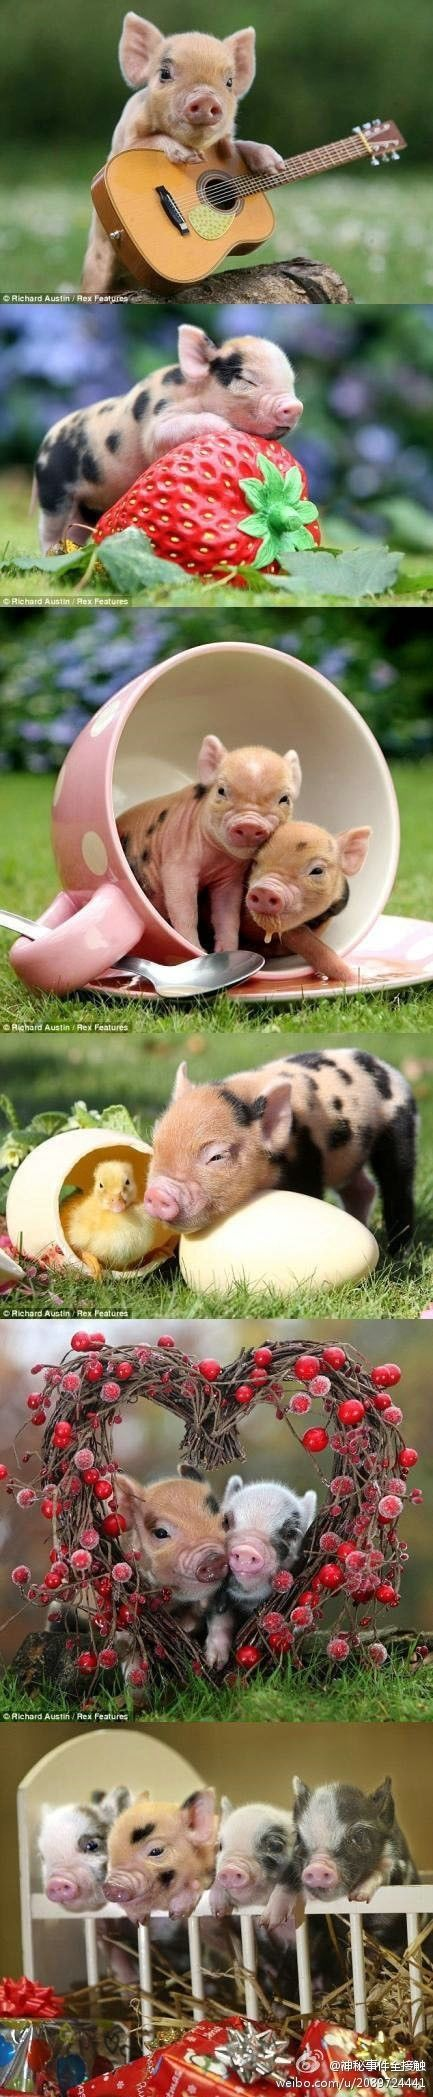 Adorable Piggies